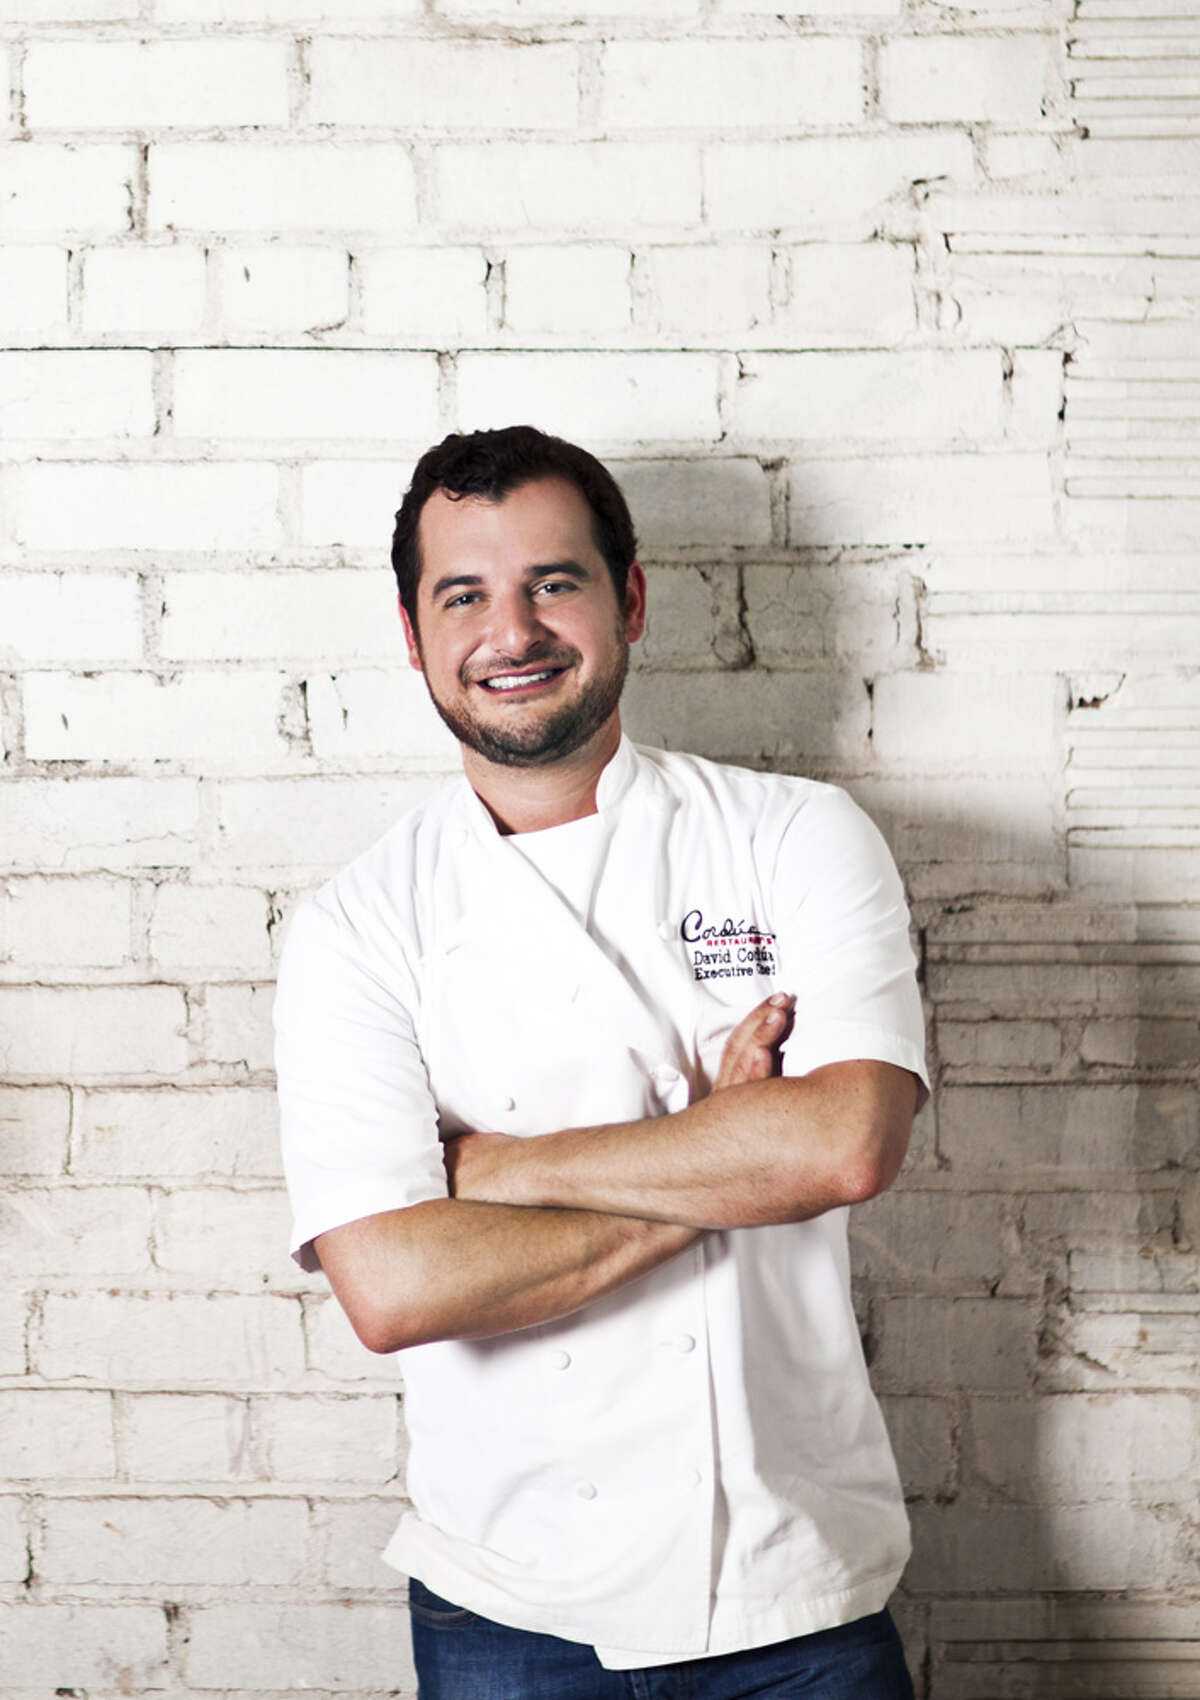 Sabores CDMX is a three-day culinary event that brings four of Mexico City's most talented chefs to Houston for dinners at three of Houston's top restaurants (Americas, Cafe Annie and Pico's). Shown: Chef David Cordua of Americas.